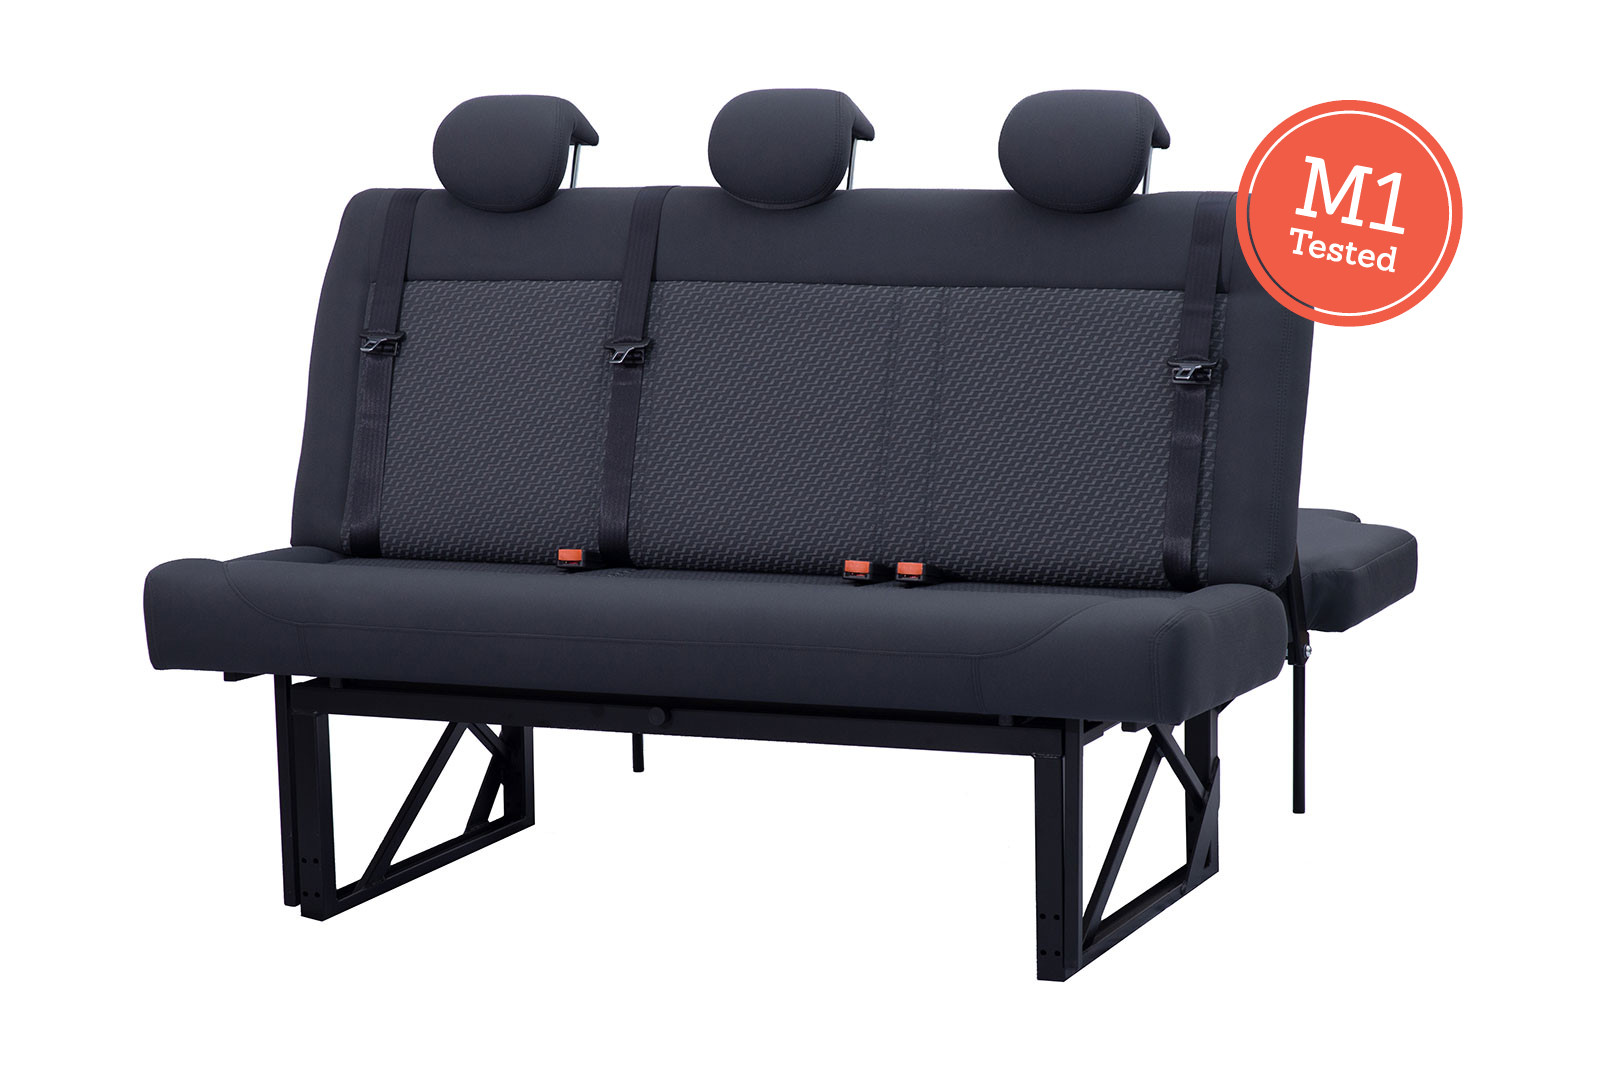 Cambee Flex 156 M1 rated with three seats